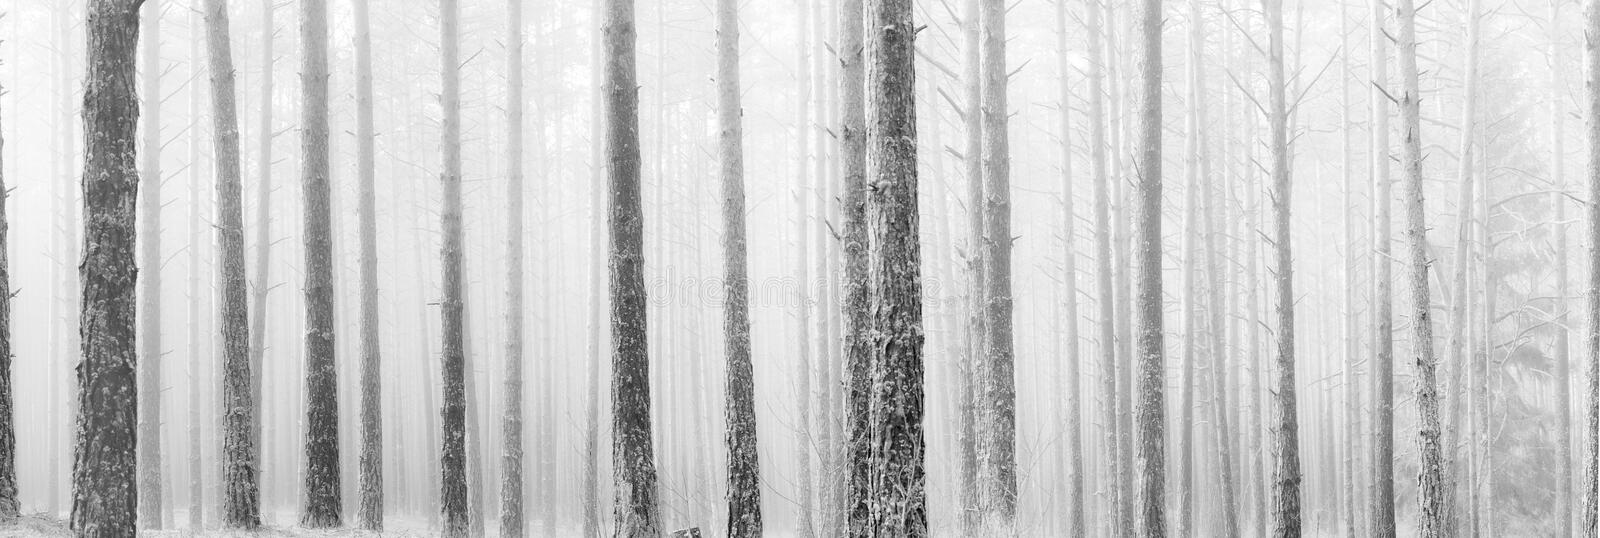 Download Tall Bare Pine Trees In Winter Fog Stock Photo - Image of storm, pine: 38319142